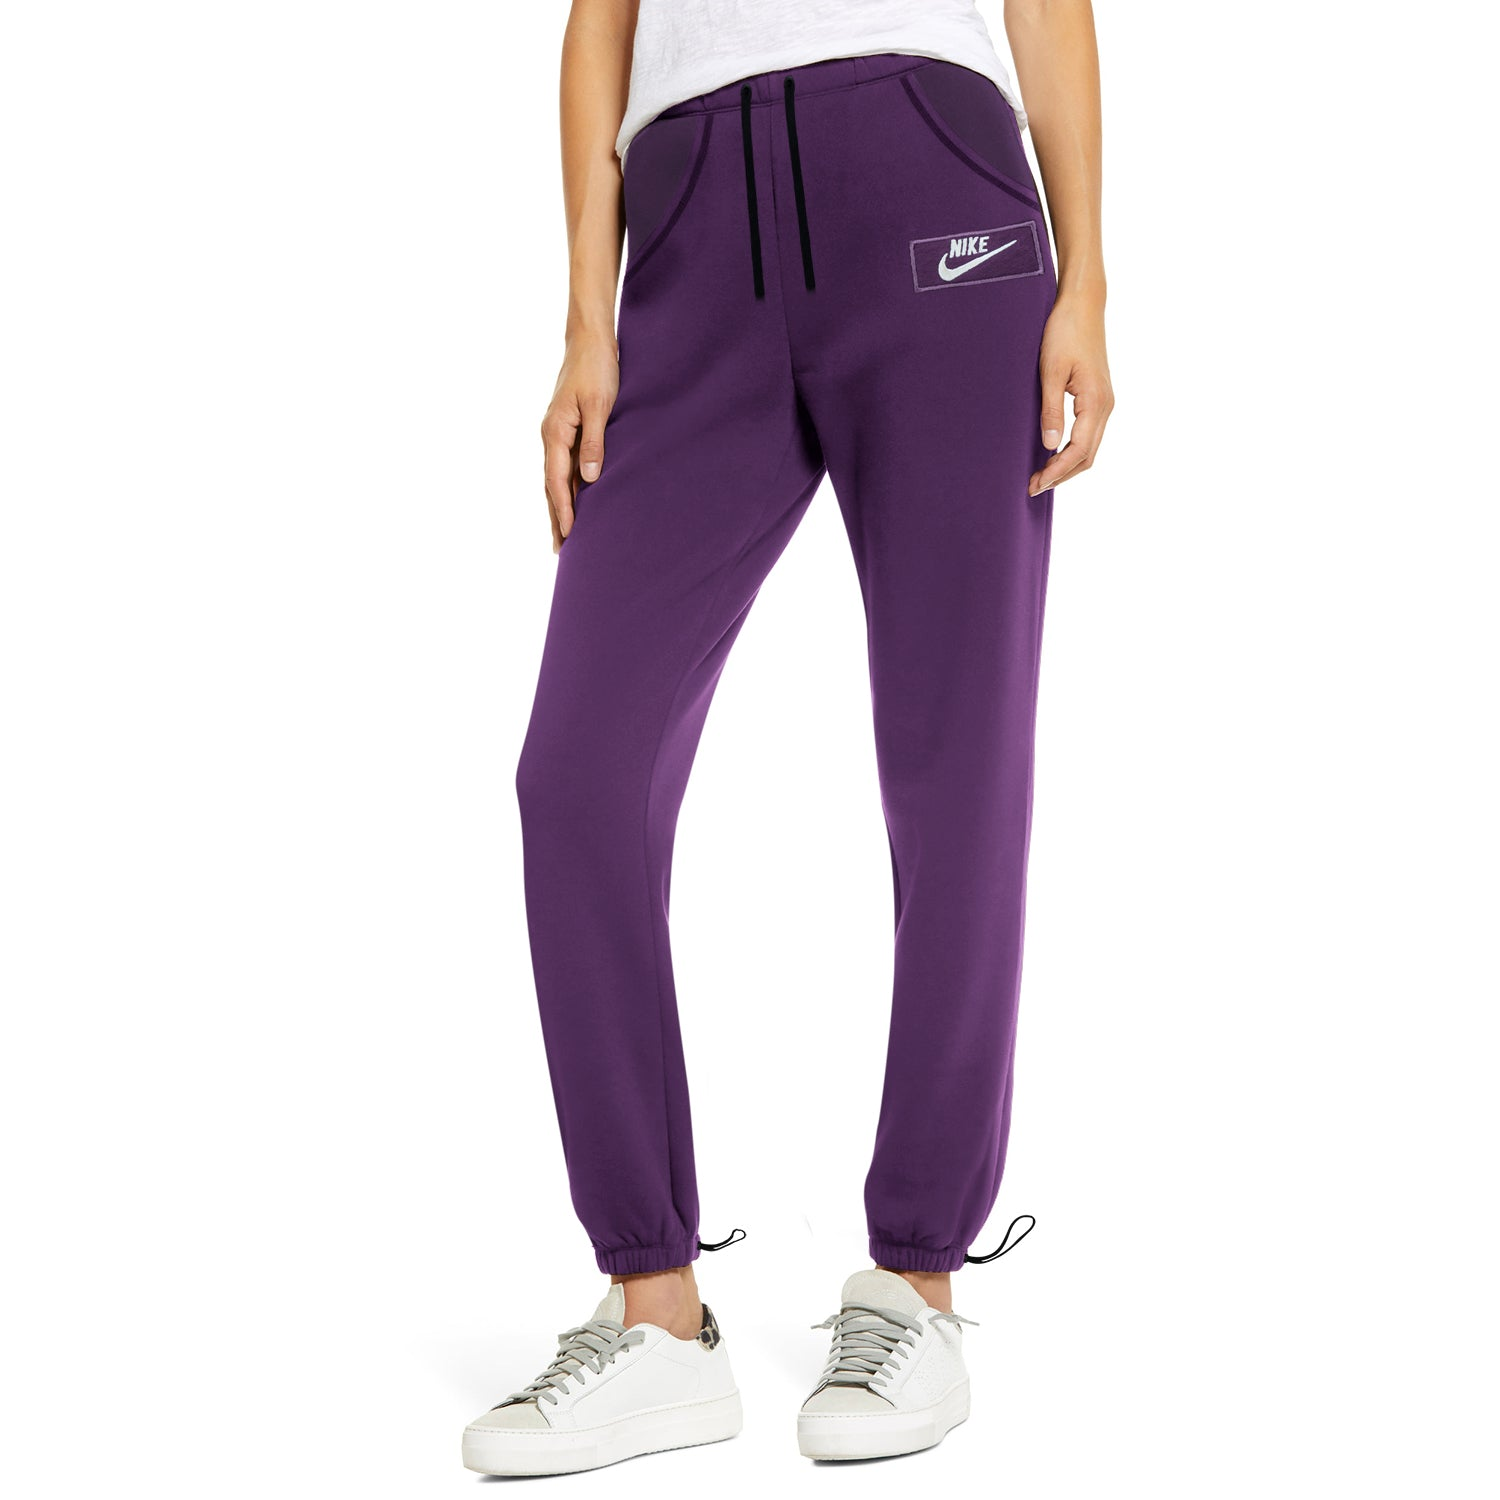 NK Terry Fleece Slim Fit Pant Style Jogging Trouser For Ladies-Dark Purple with White Embroidery-BE13959